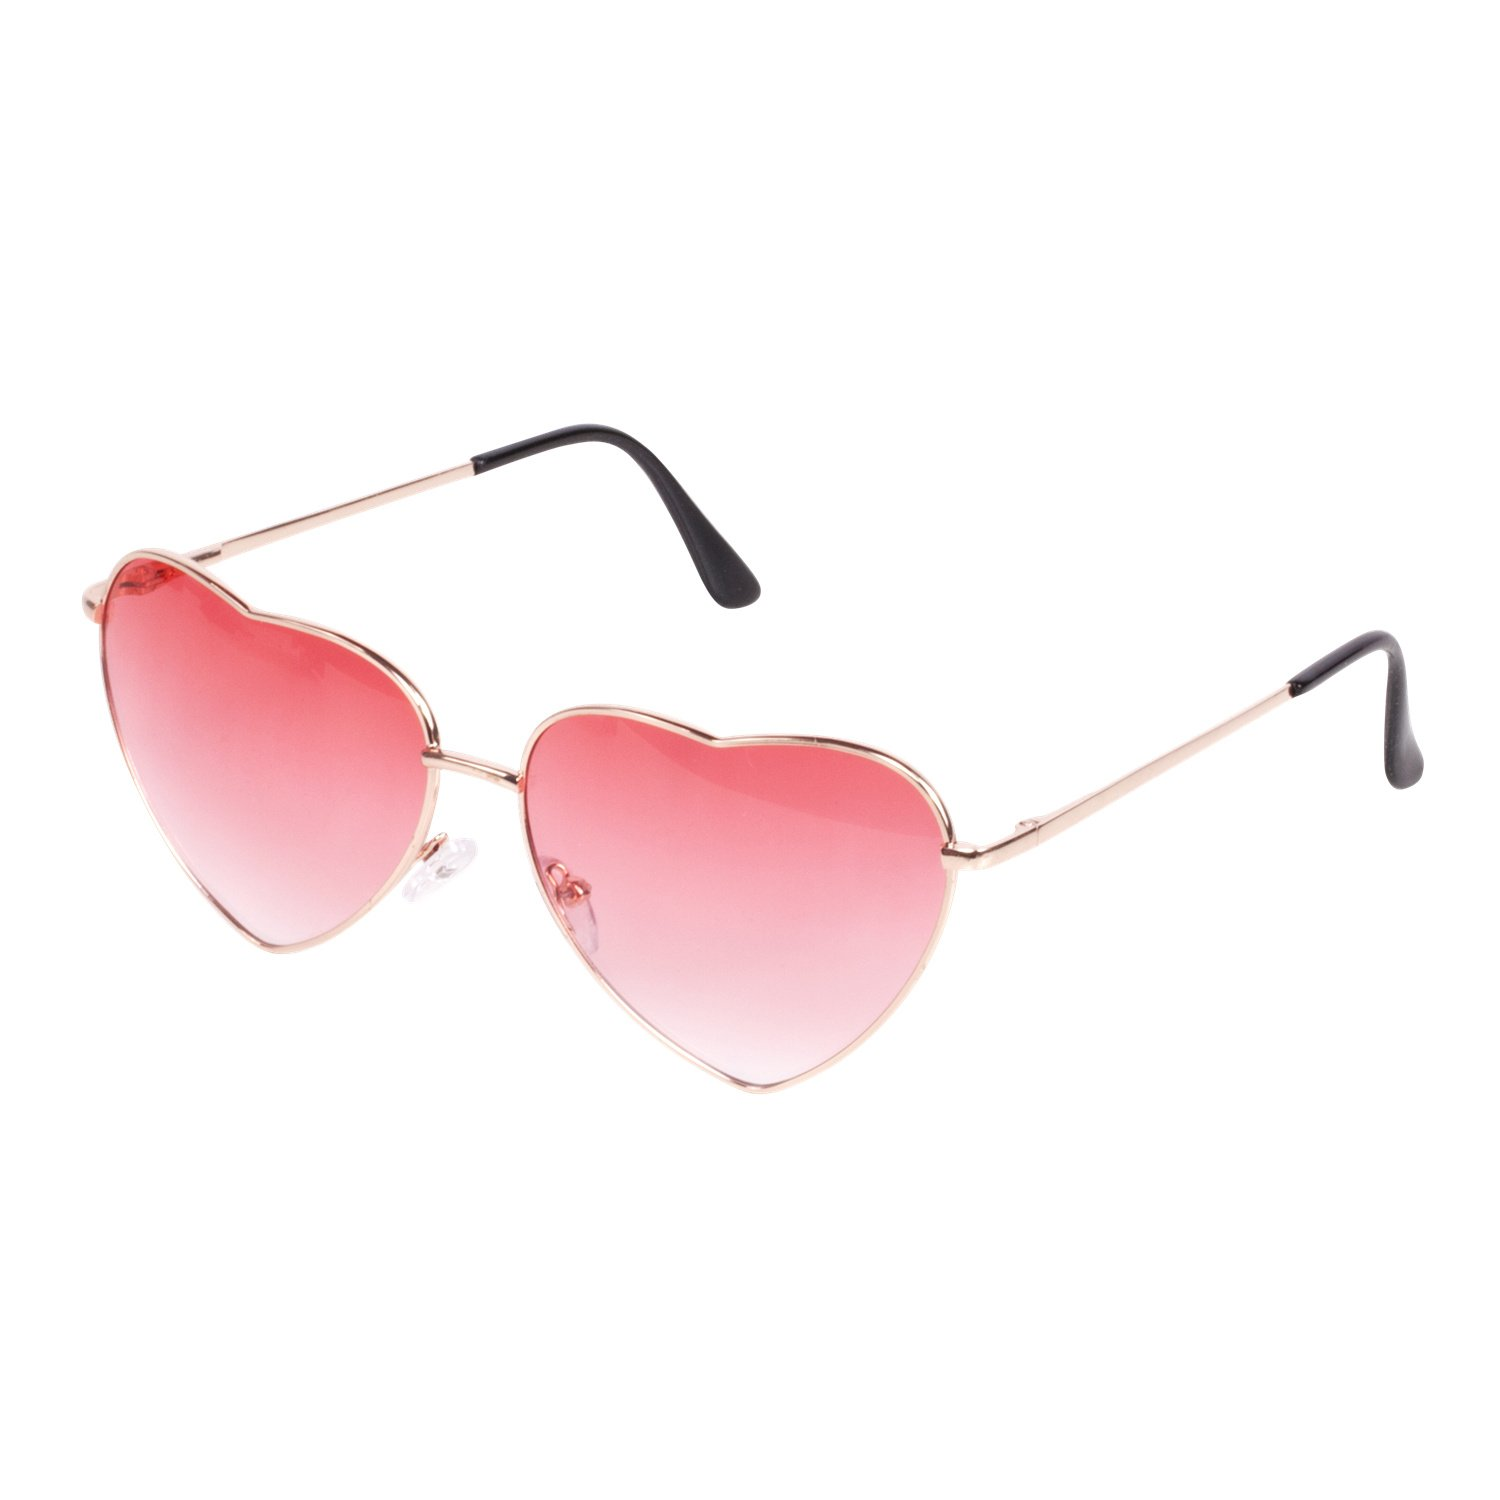 8b620d2523a83 Get Quotations · CENWOCON Heart Shape Sunglasses Beach Vacation Sunglasses  Gold Frame